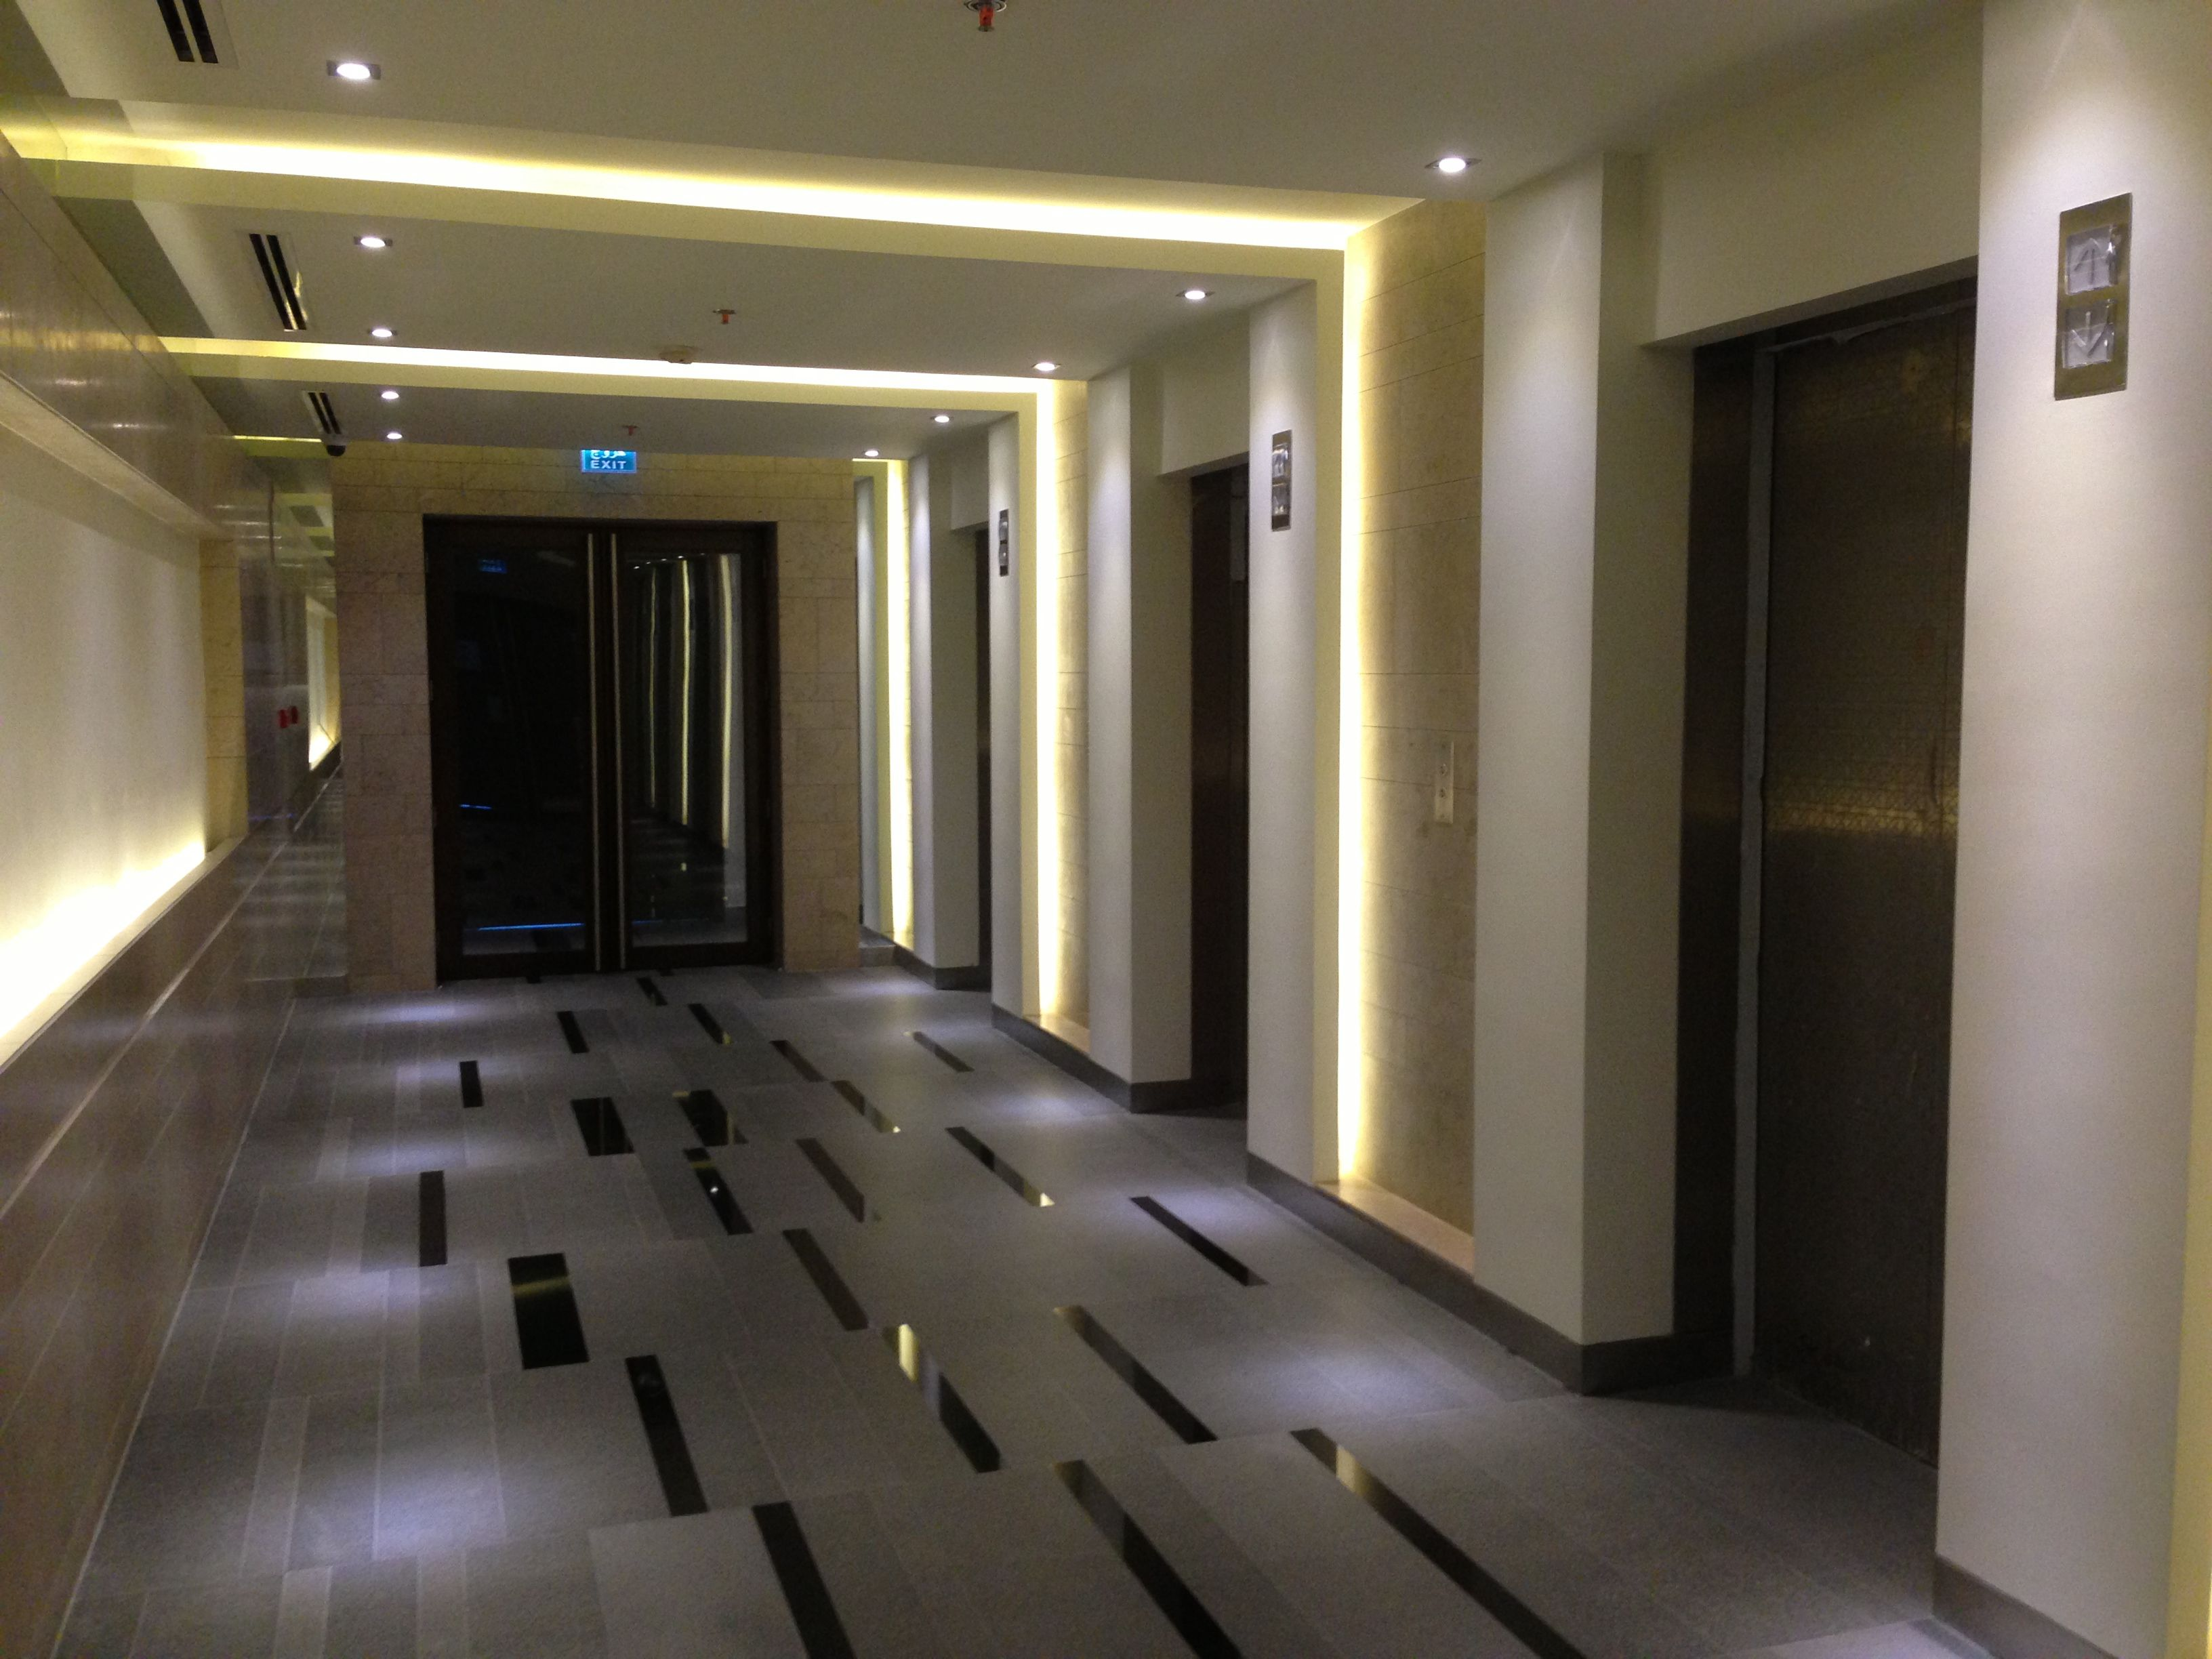 Fakhro_Tower_typical_lift_lobby_-_Feb_2013.jpg (3264×2448 ...